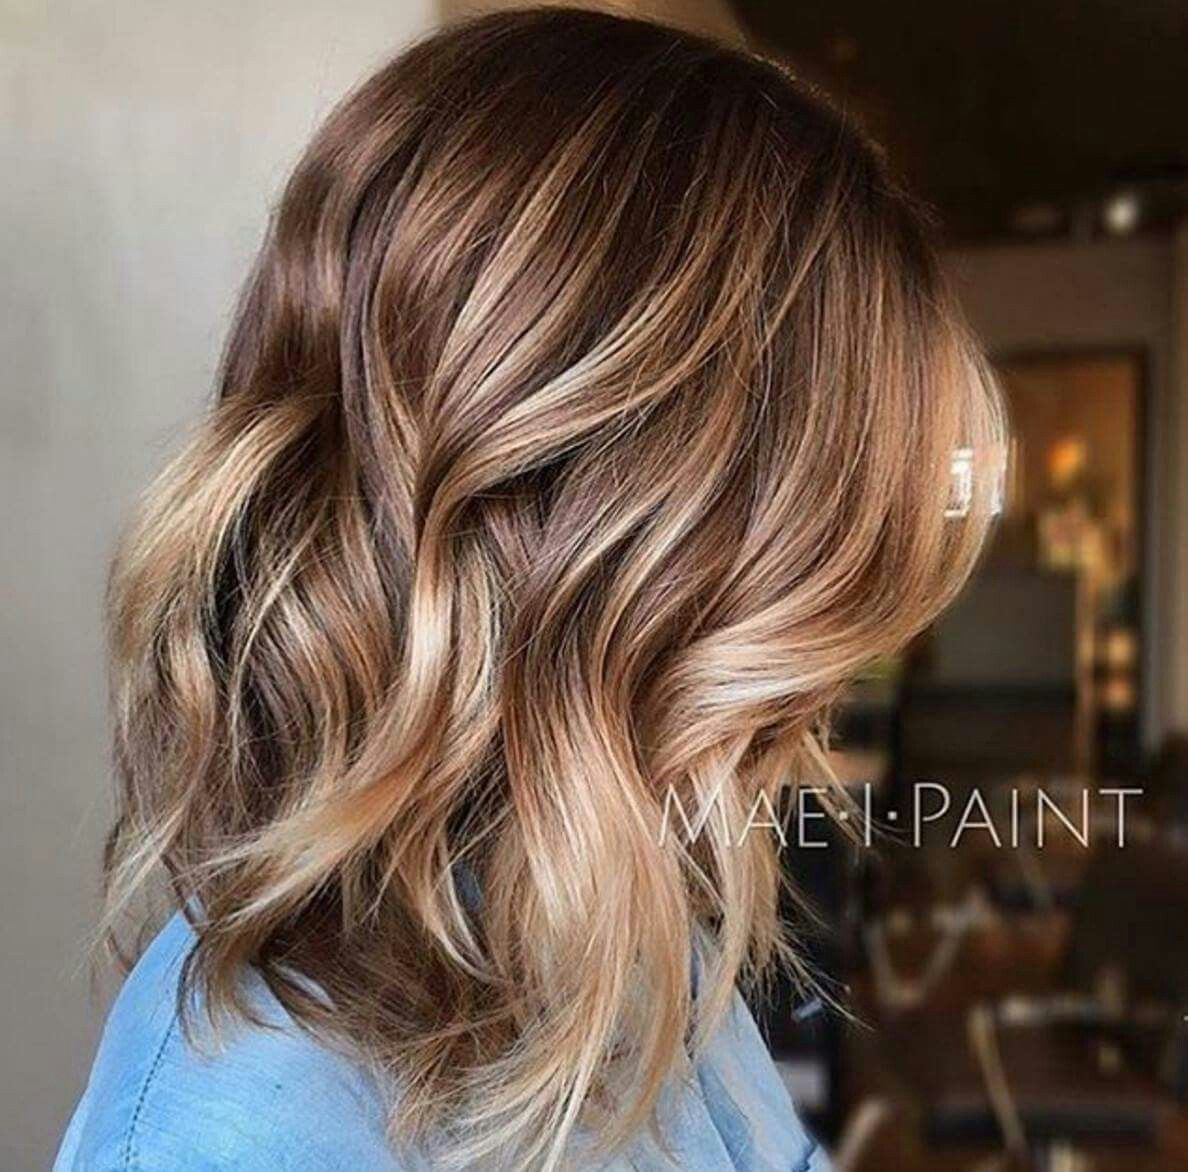 Pin by Amanda Potter on highlights  Pinterest  Hair style Hair